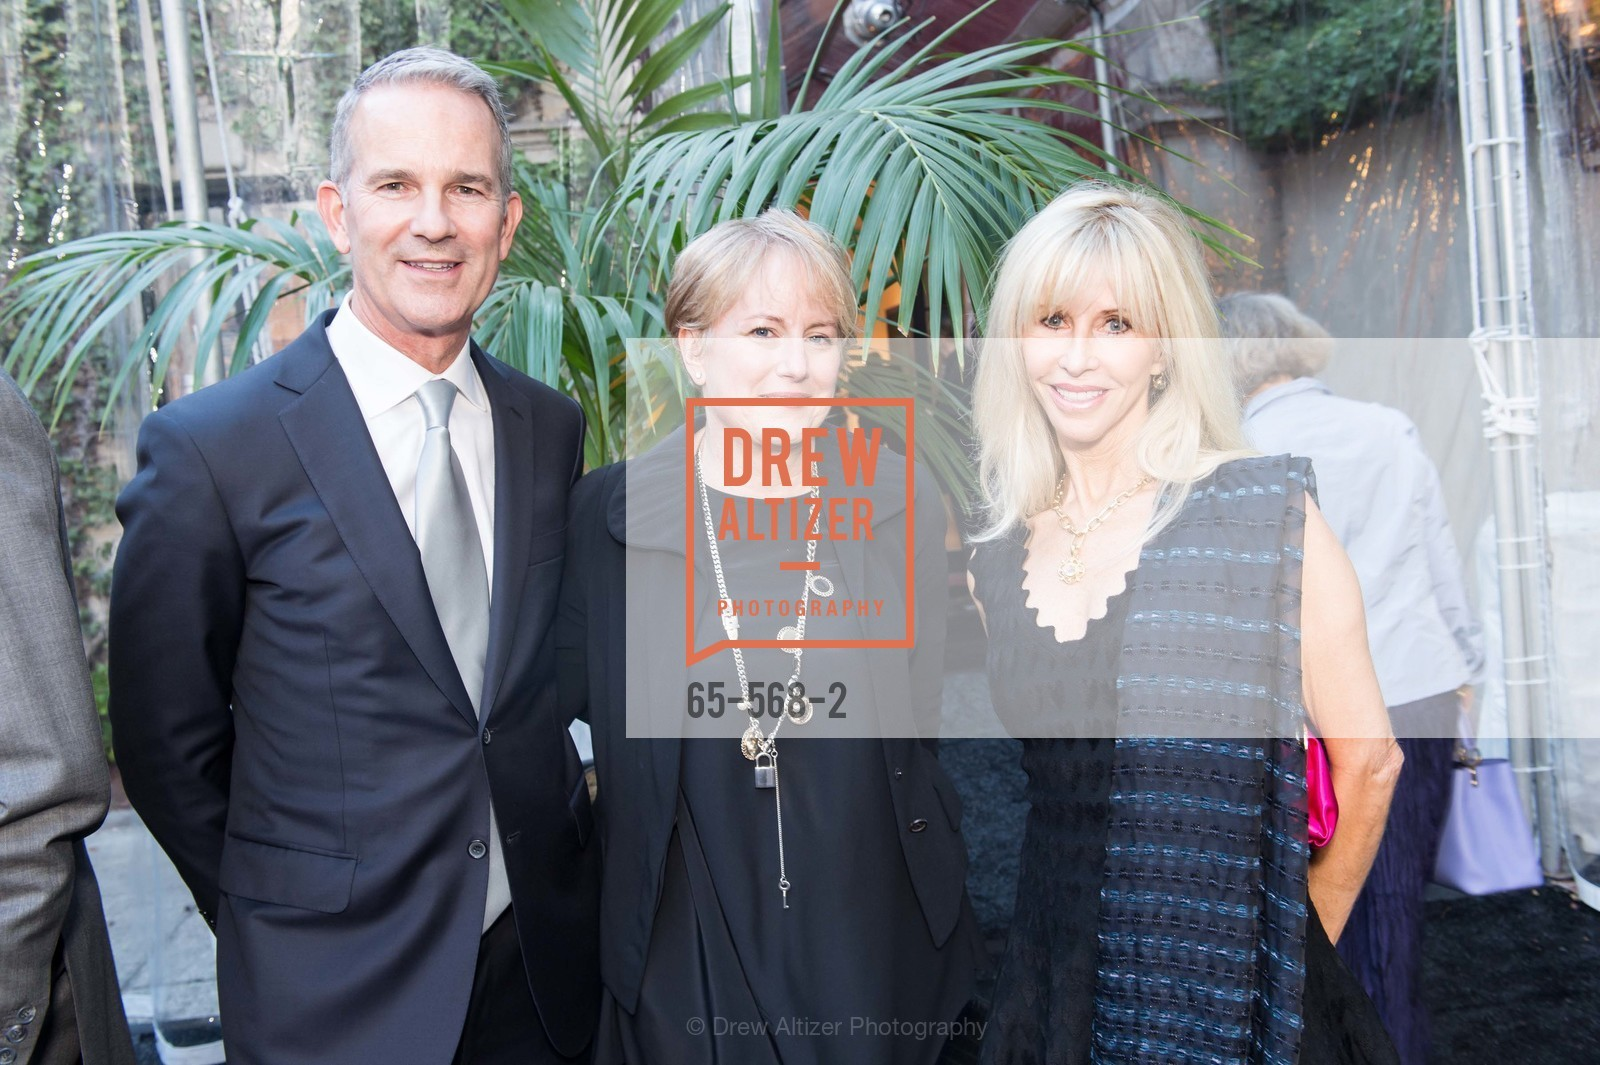 Jeffrey Gibson, Alice Alioto, Ginger Martin, SOTHEBY'S  Hosts a Private Viewing of Highlights from the Collection of MRS. PAUL MELLON, US, September 17th, 2014,Drew Altizer, Drew Altizer Photography, full-service agency, private events, San Francisco photographer, photographer california